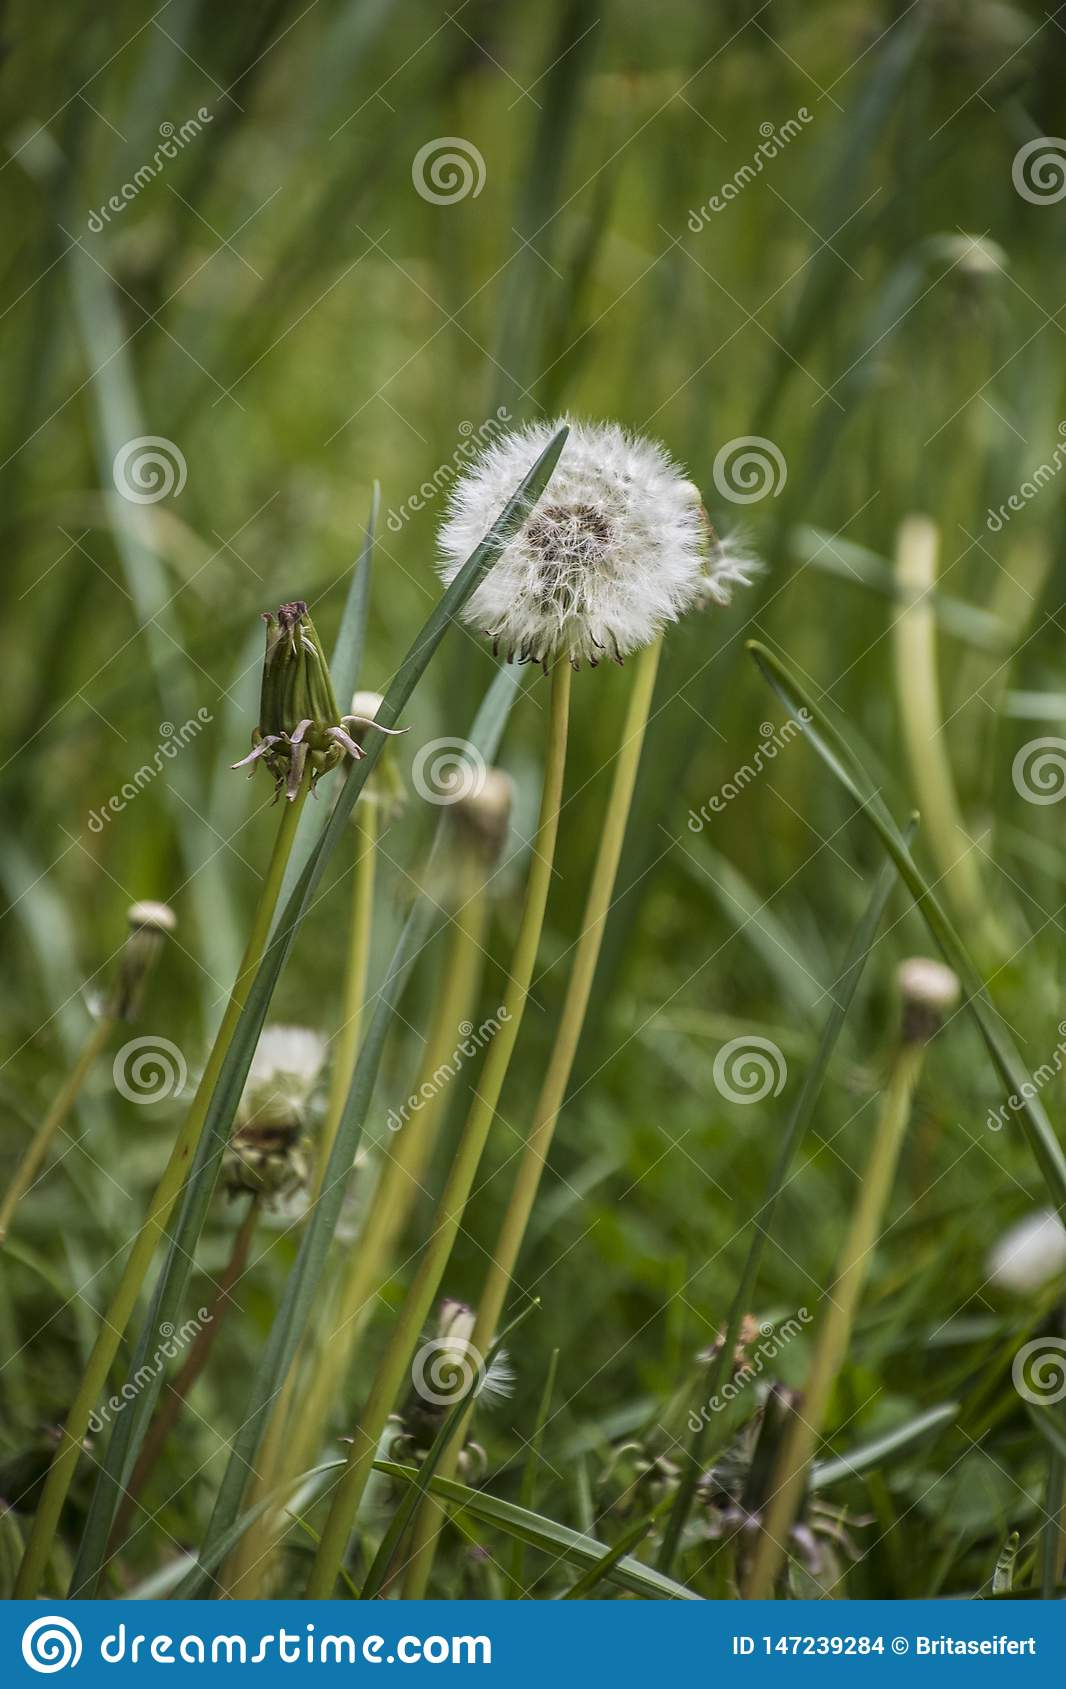 Dandelion on the meadow.Spring day. Overgrown with green grass meadow, among the grasses you can see numerous developed dandelions